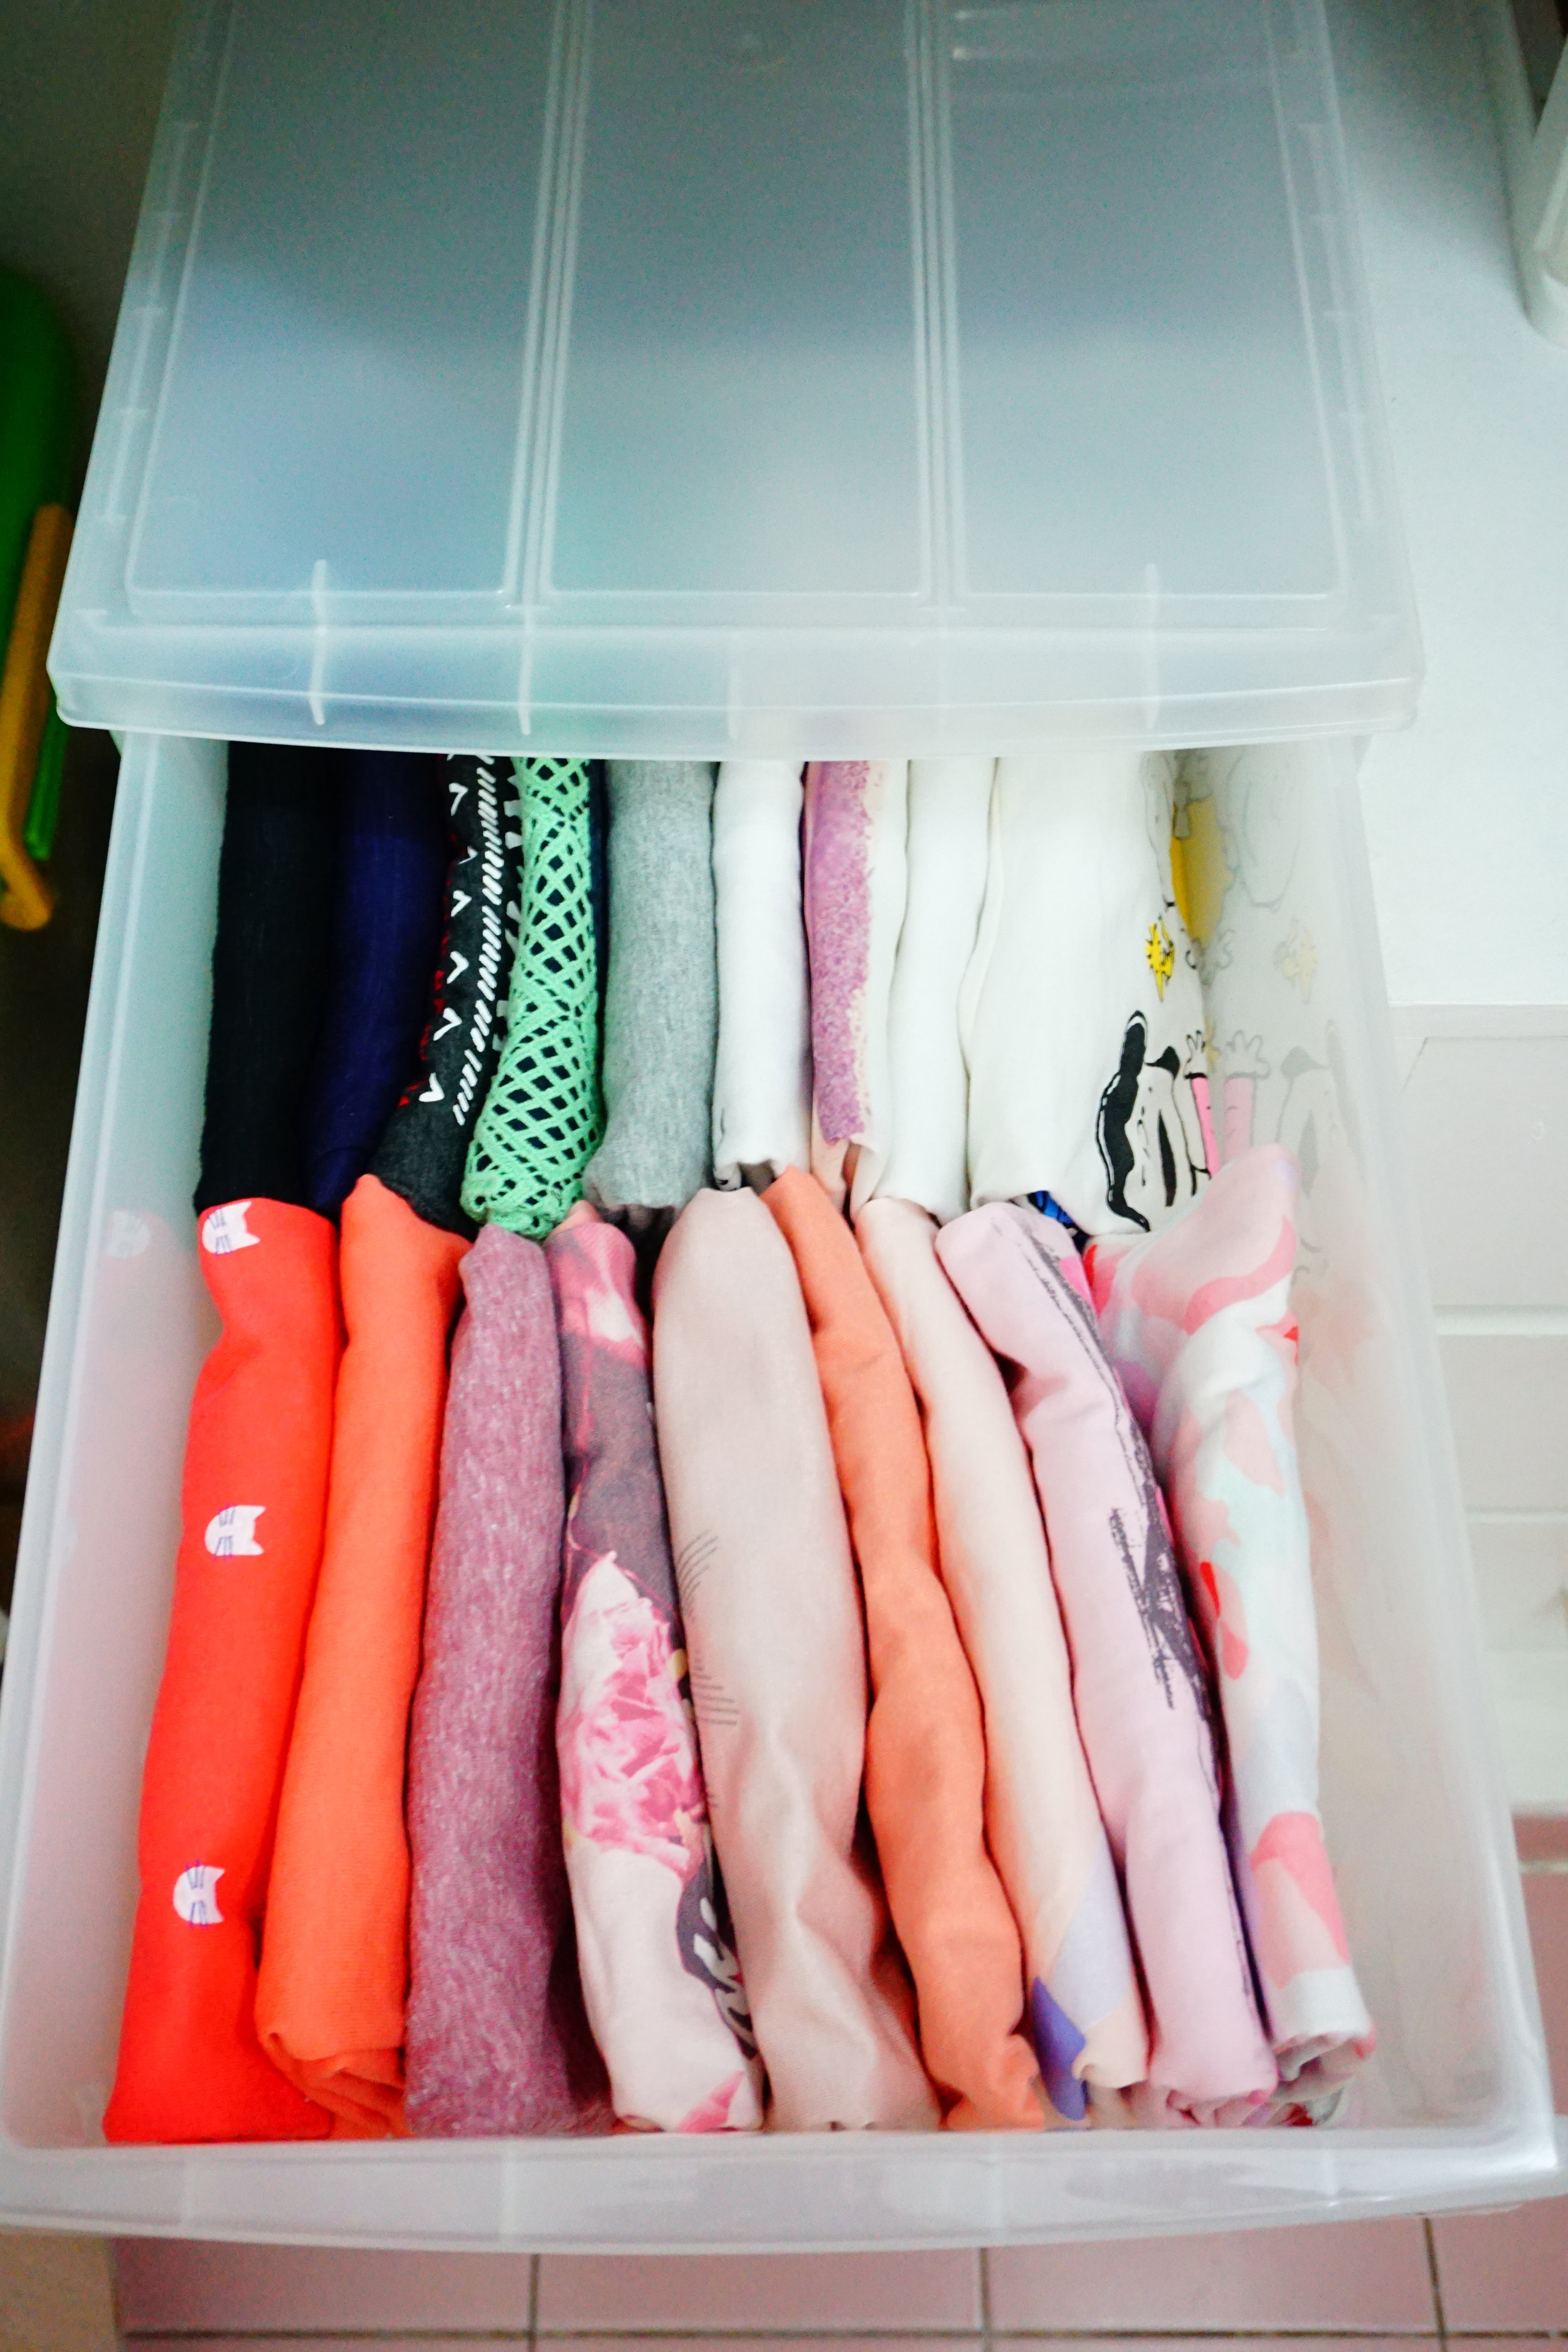 Konmari Method ofStoring Shirts - Fold shirts into rectangle, file vertically and fill your drawer 90% full.